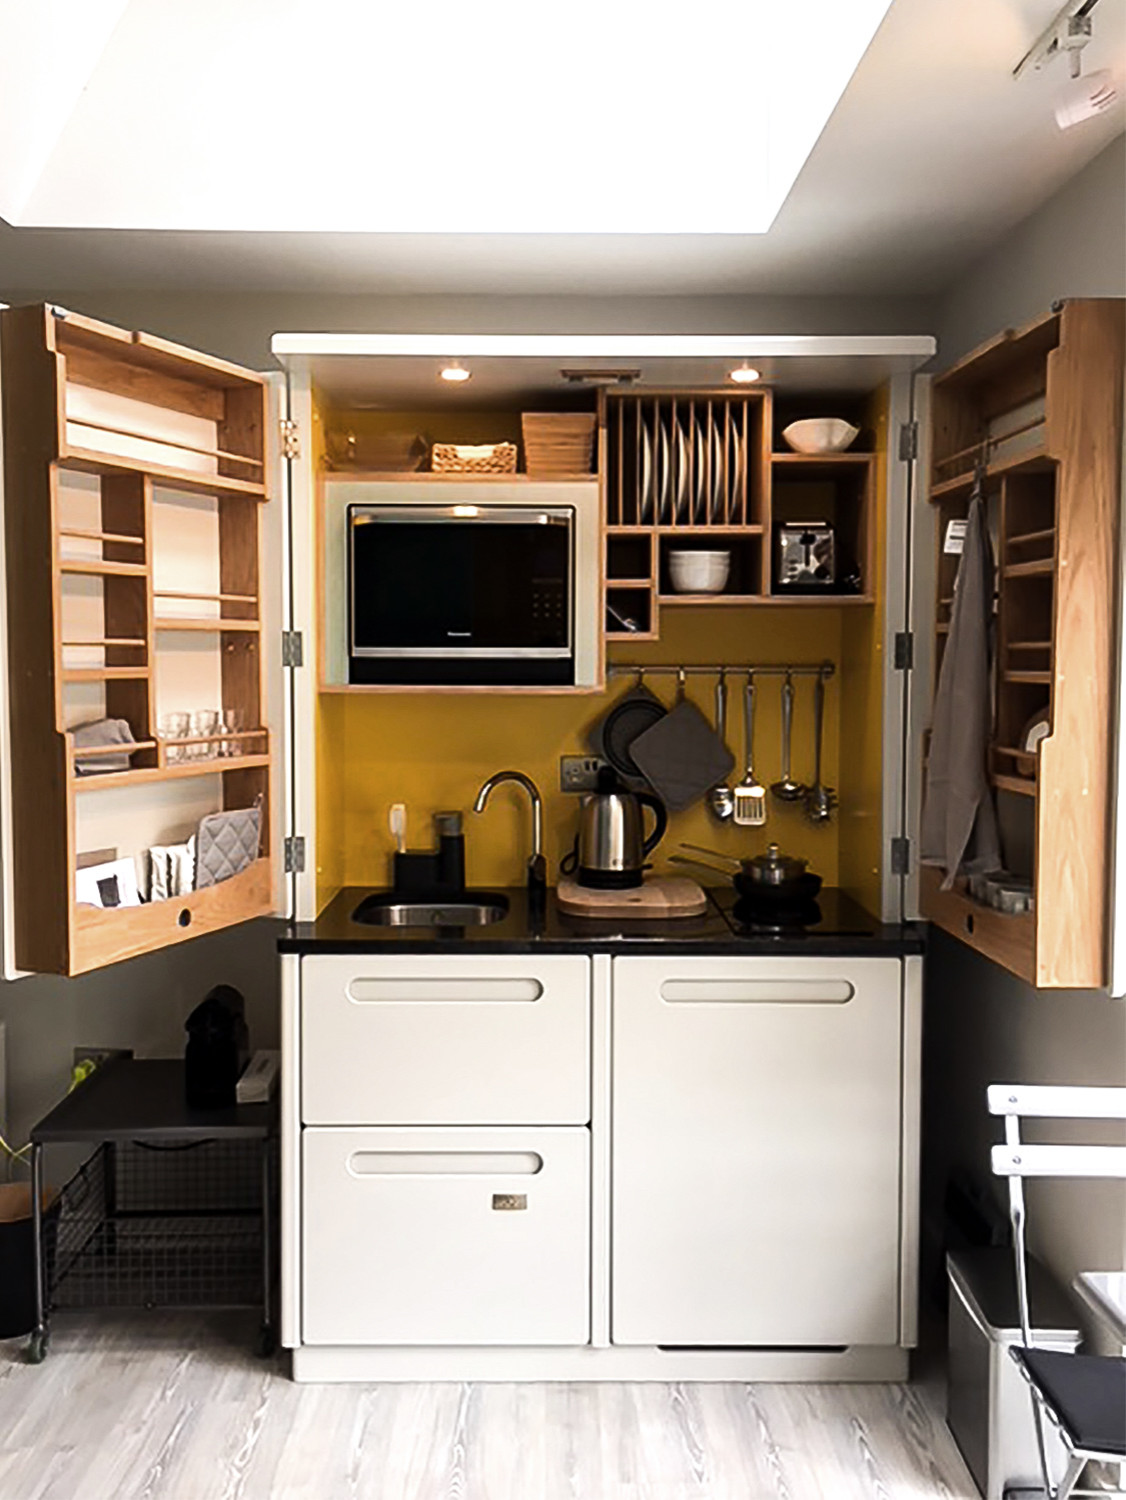 75 Beautiful Kitchen With A Drop In Sink And Yellow Backsplash Pictures Ideas November 2020 Houzz